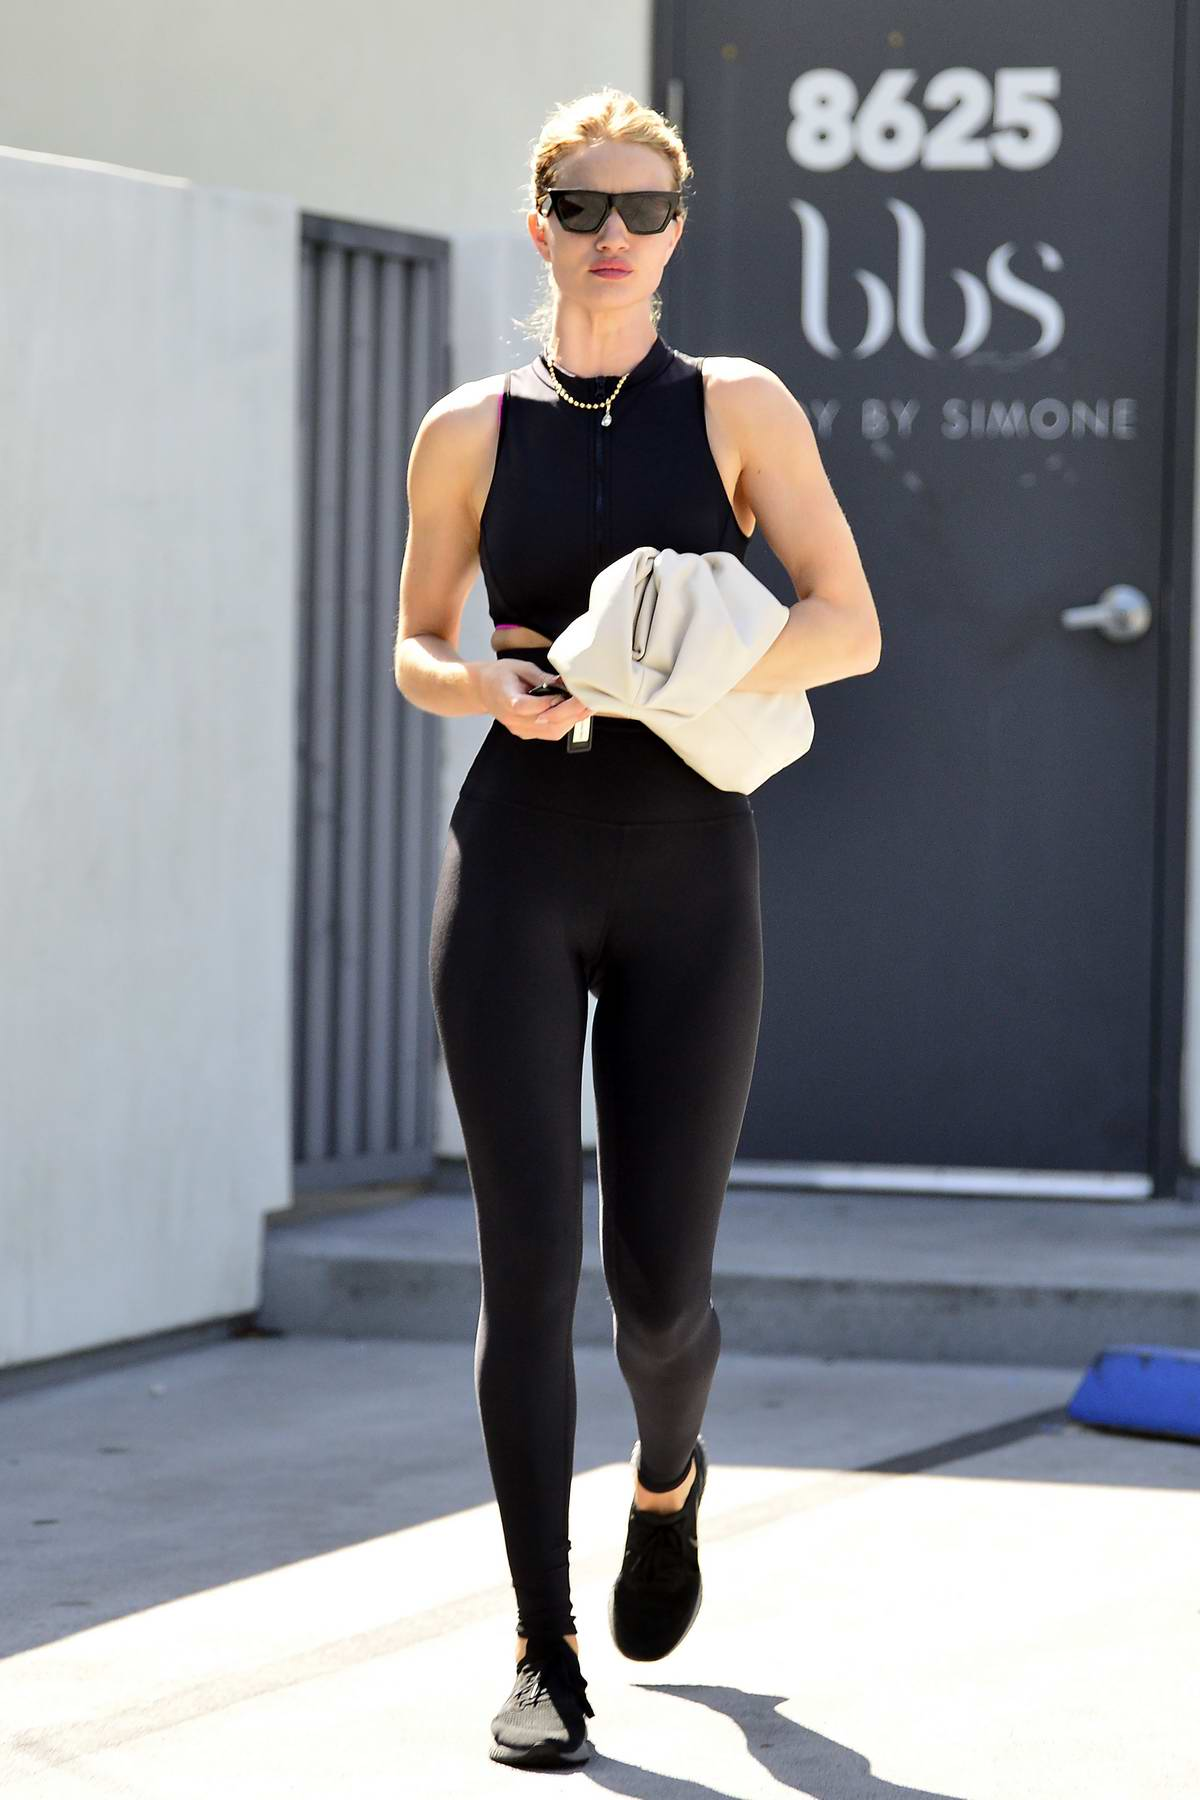 Rosie Huntington-Whiteley looks great as she leaves after a morning Pilates class in West Hollywood, Los Angeles